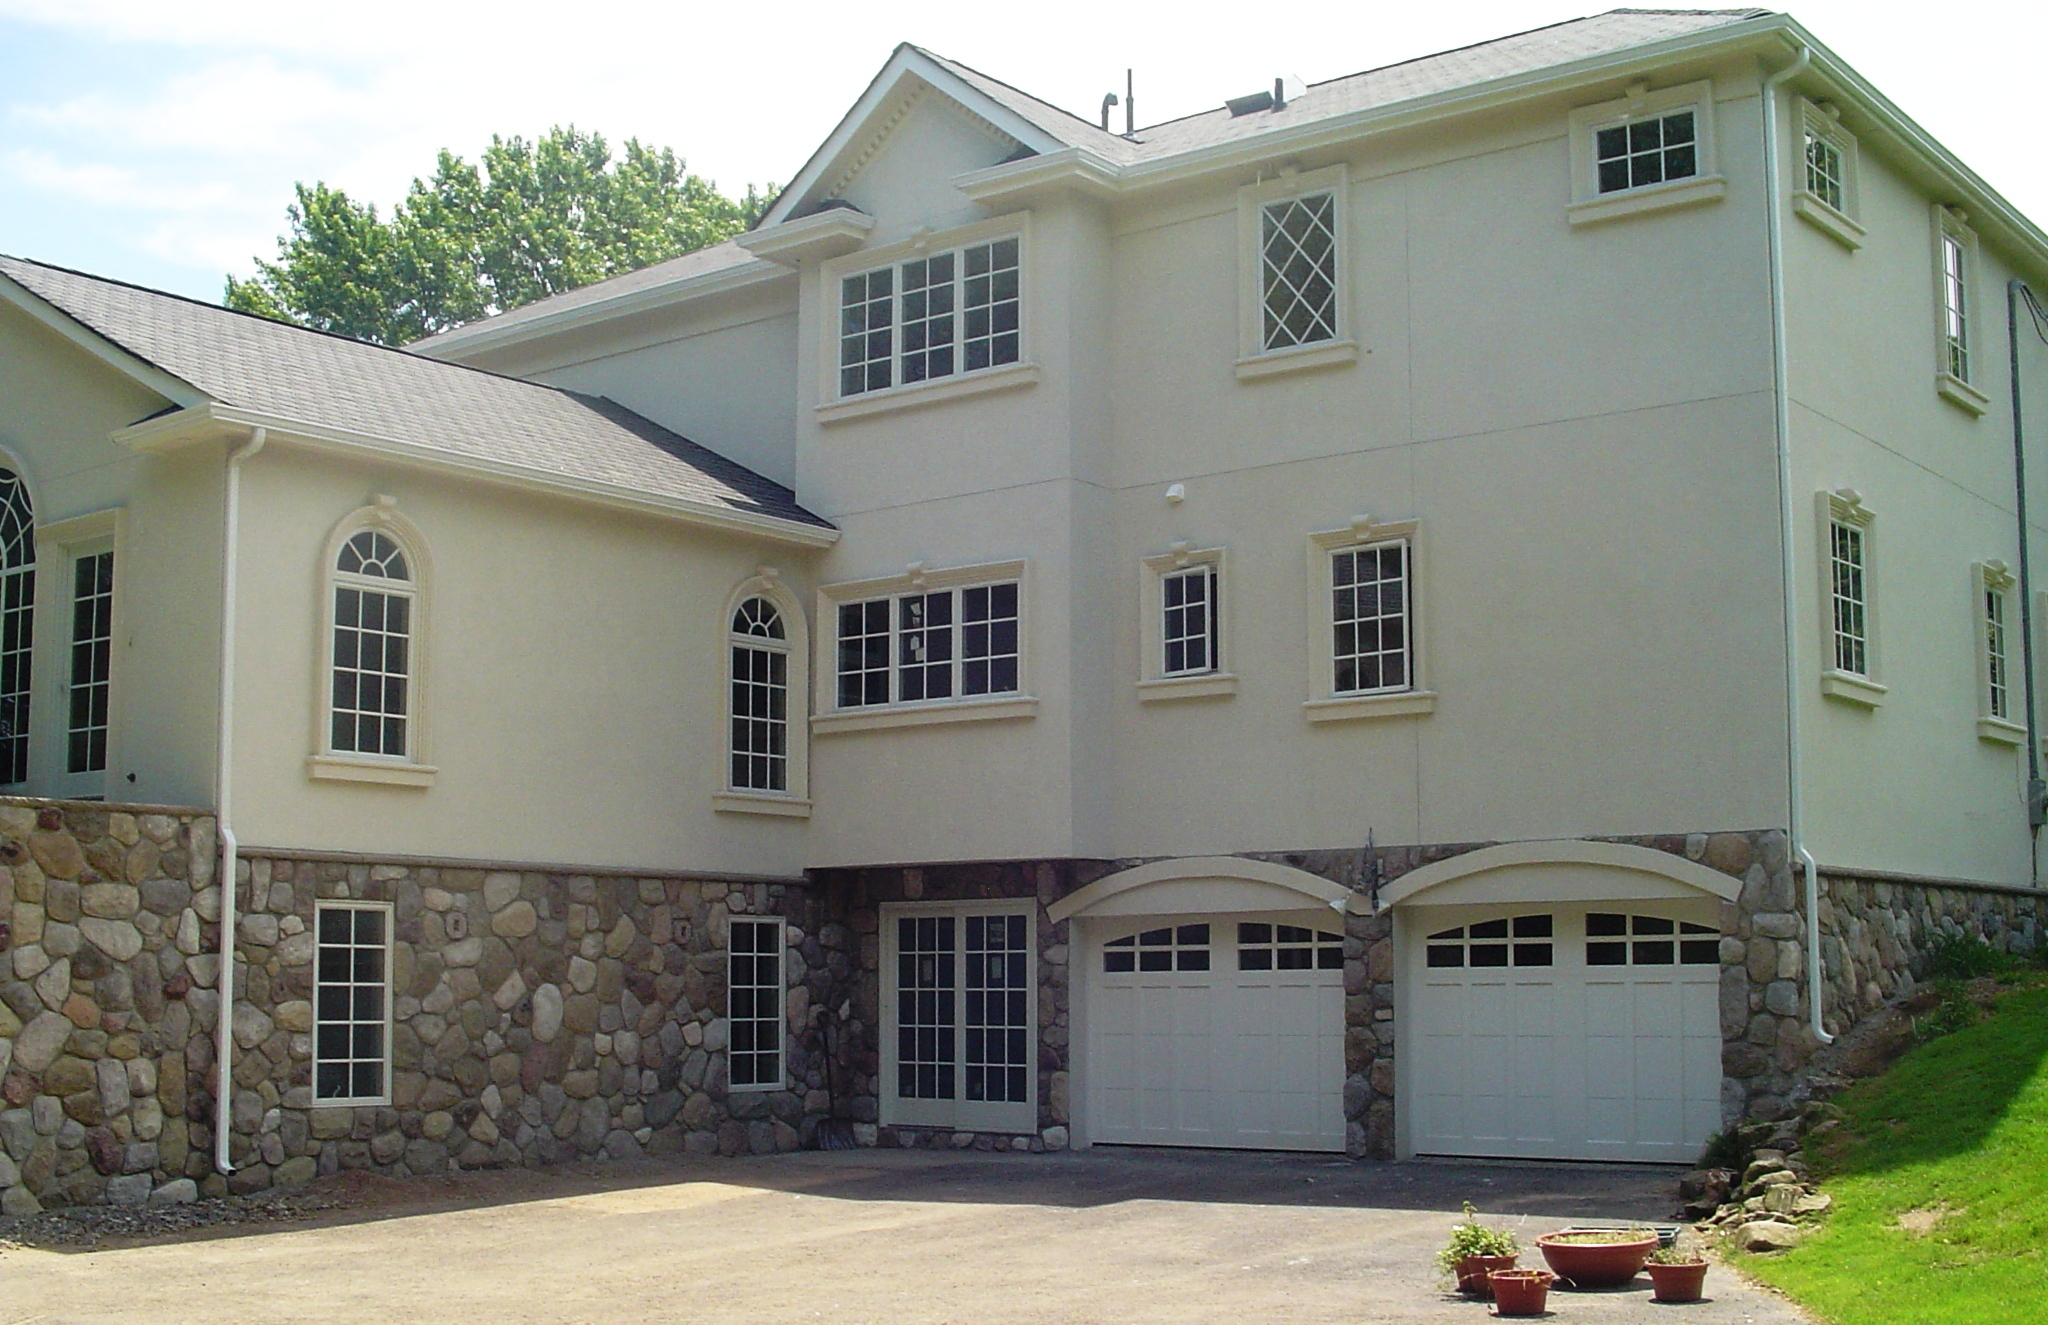 Custom home in Union County. Hardcoat stucco, stone, custom trim detail.